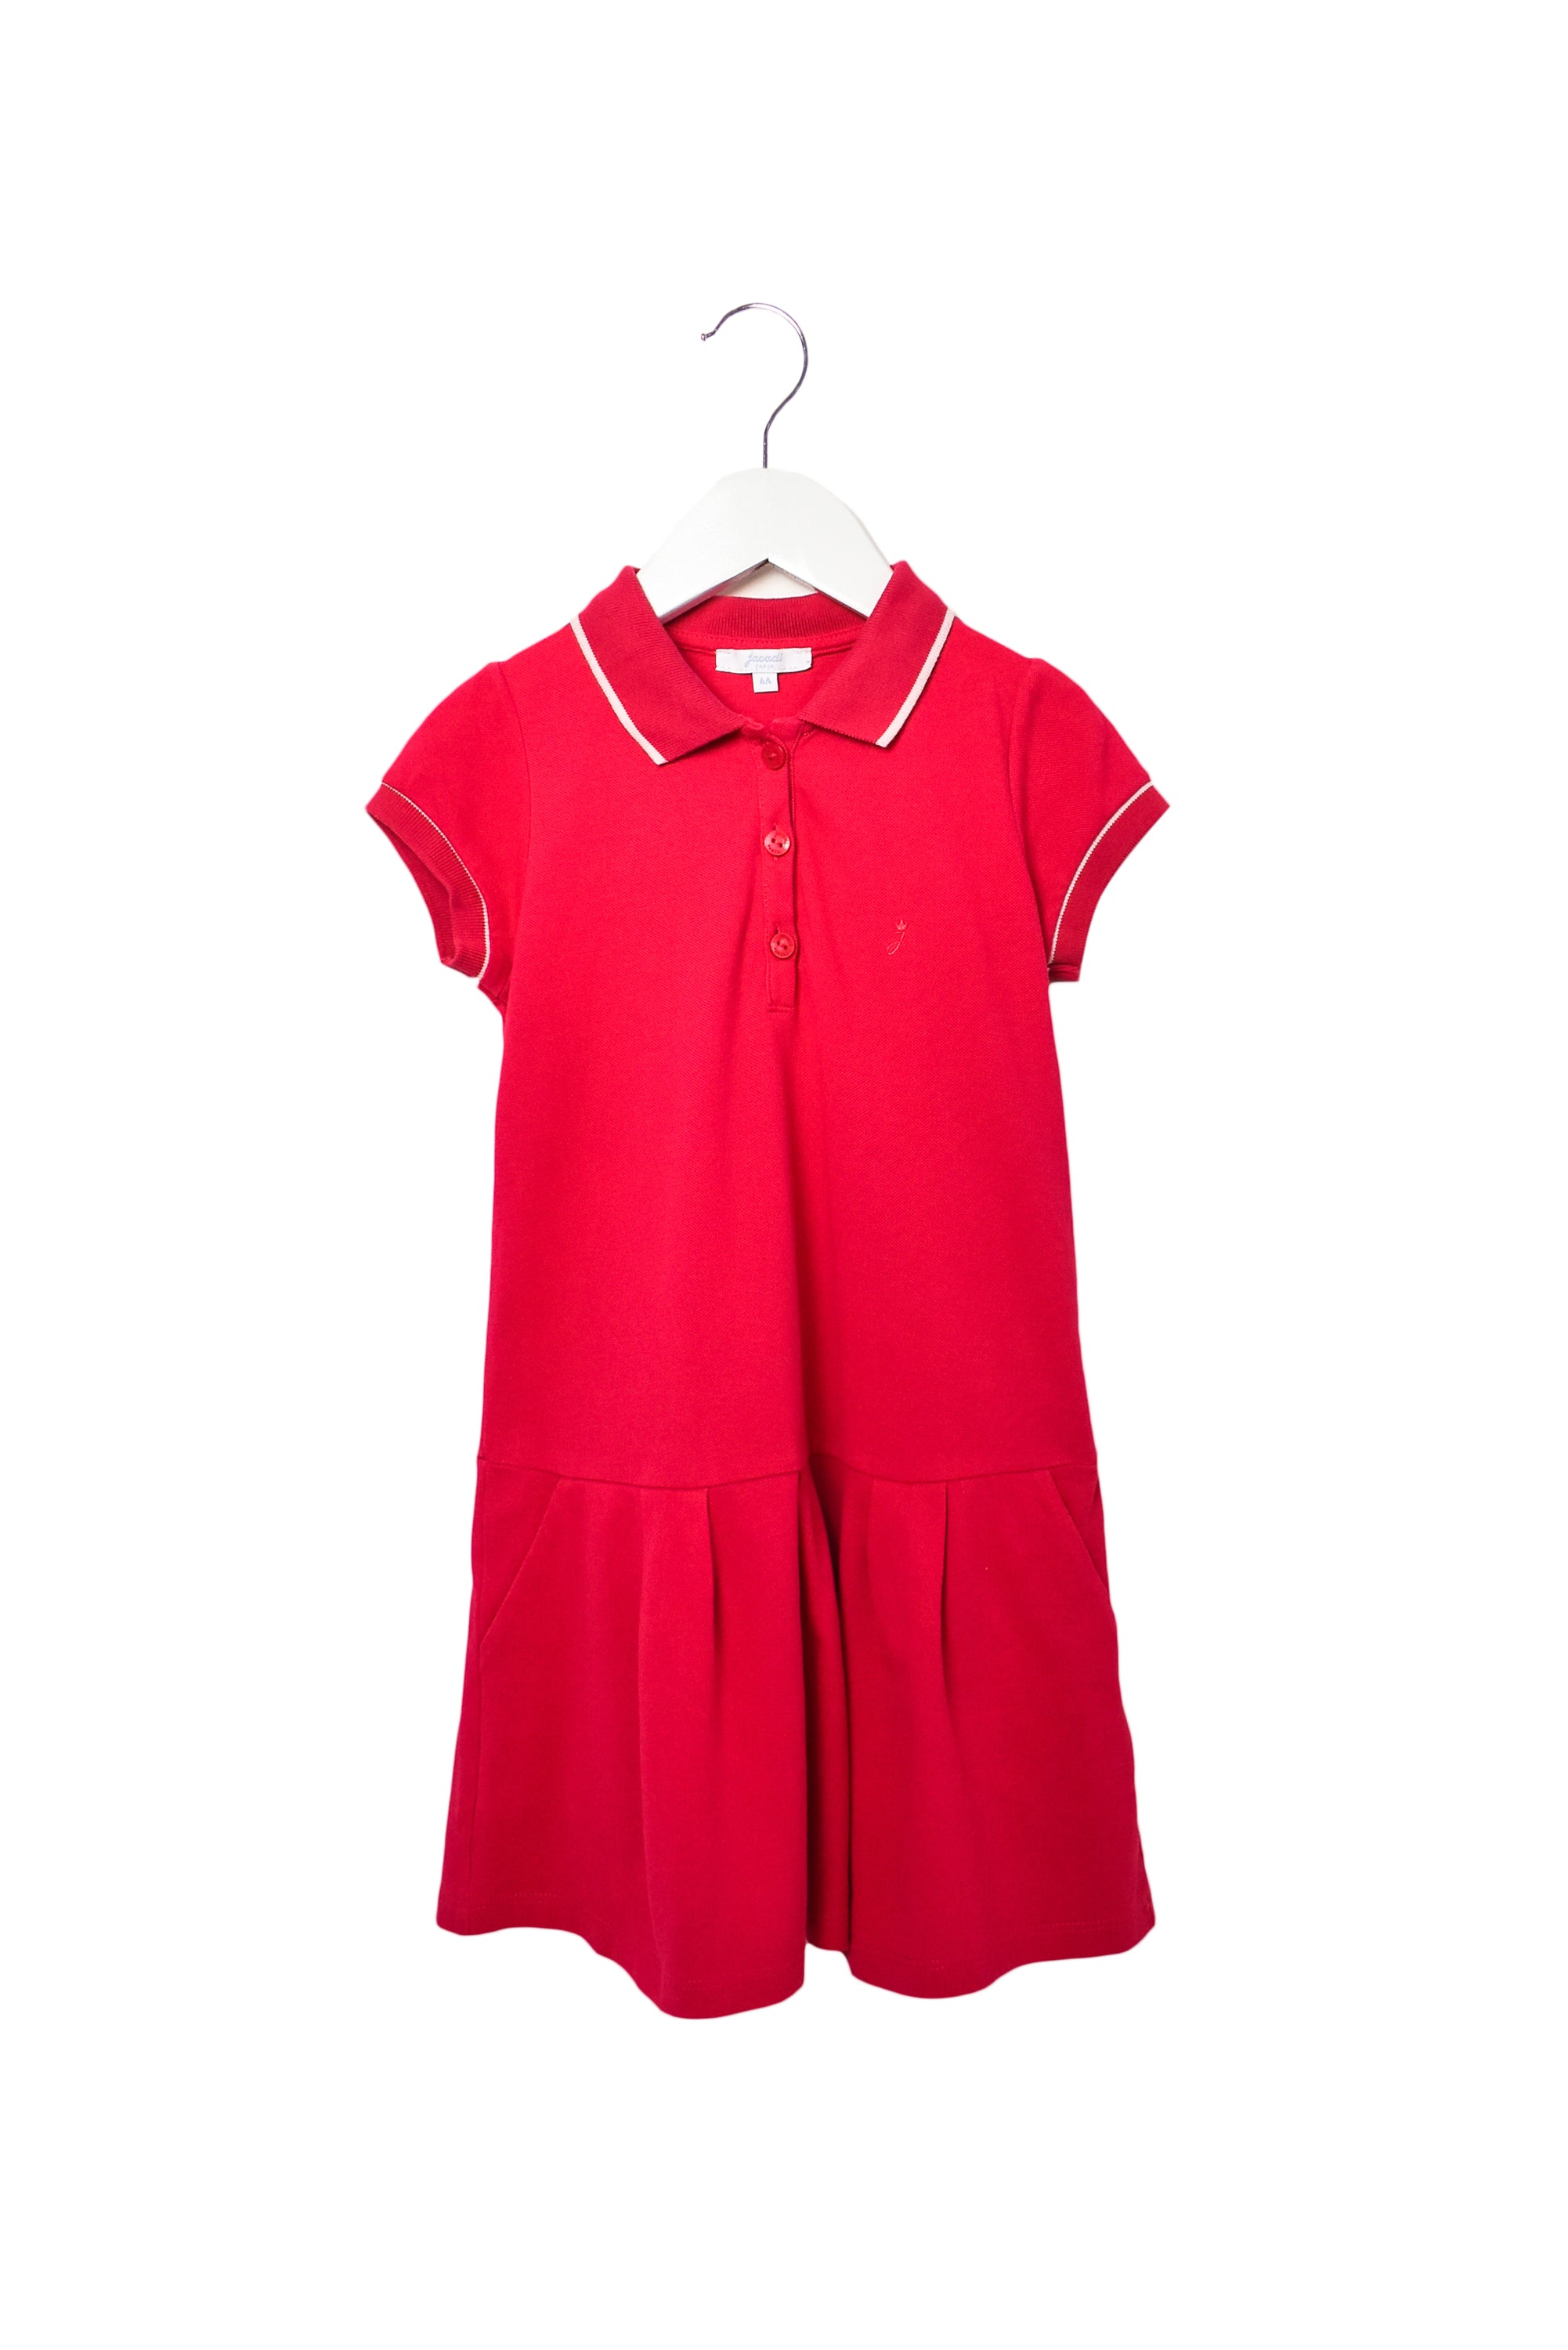 10008677 Jacadi Kids~ Dress 6T at Retykle